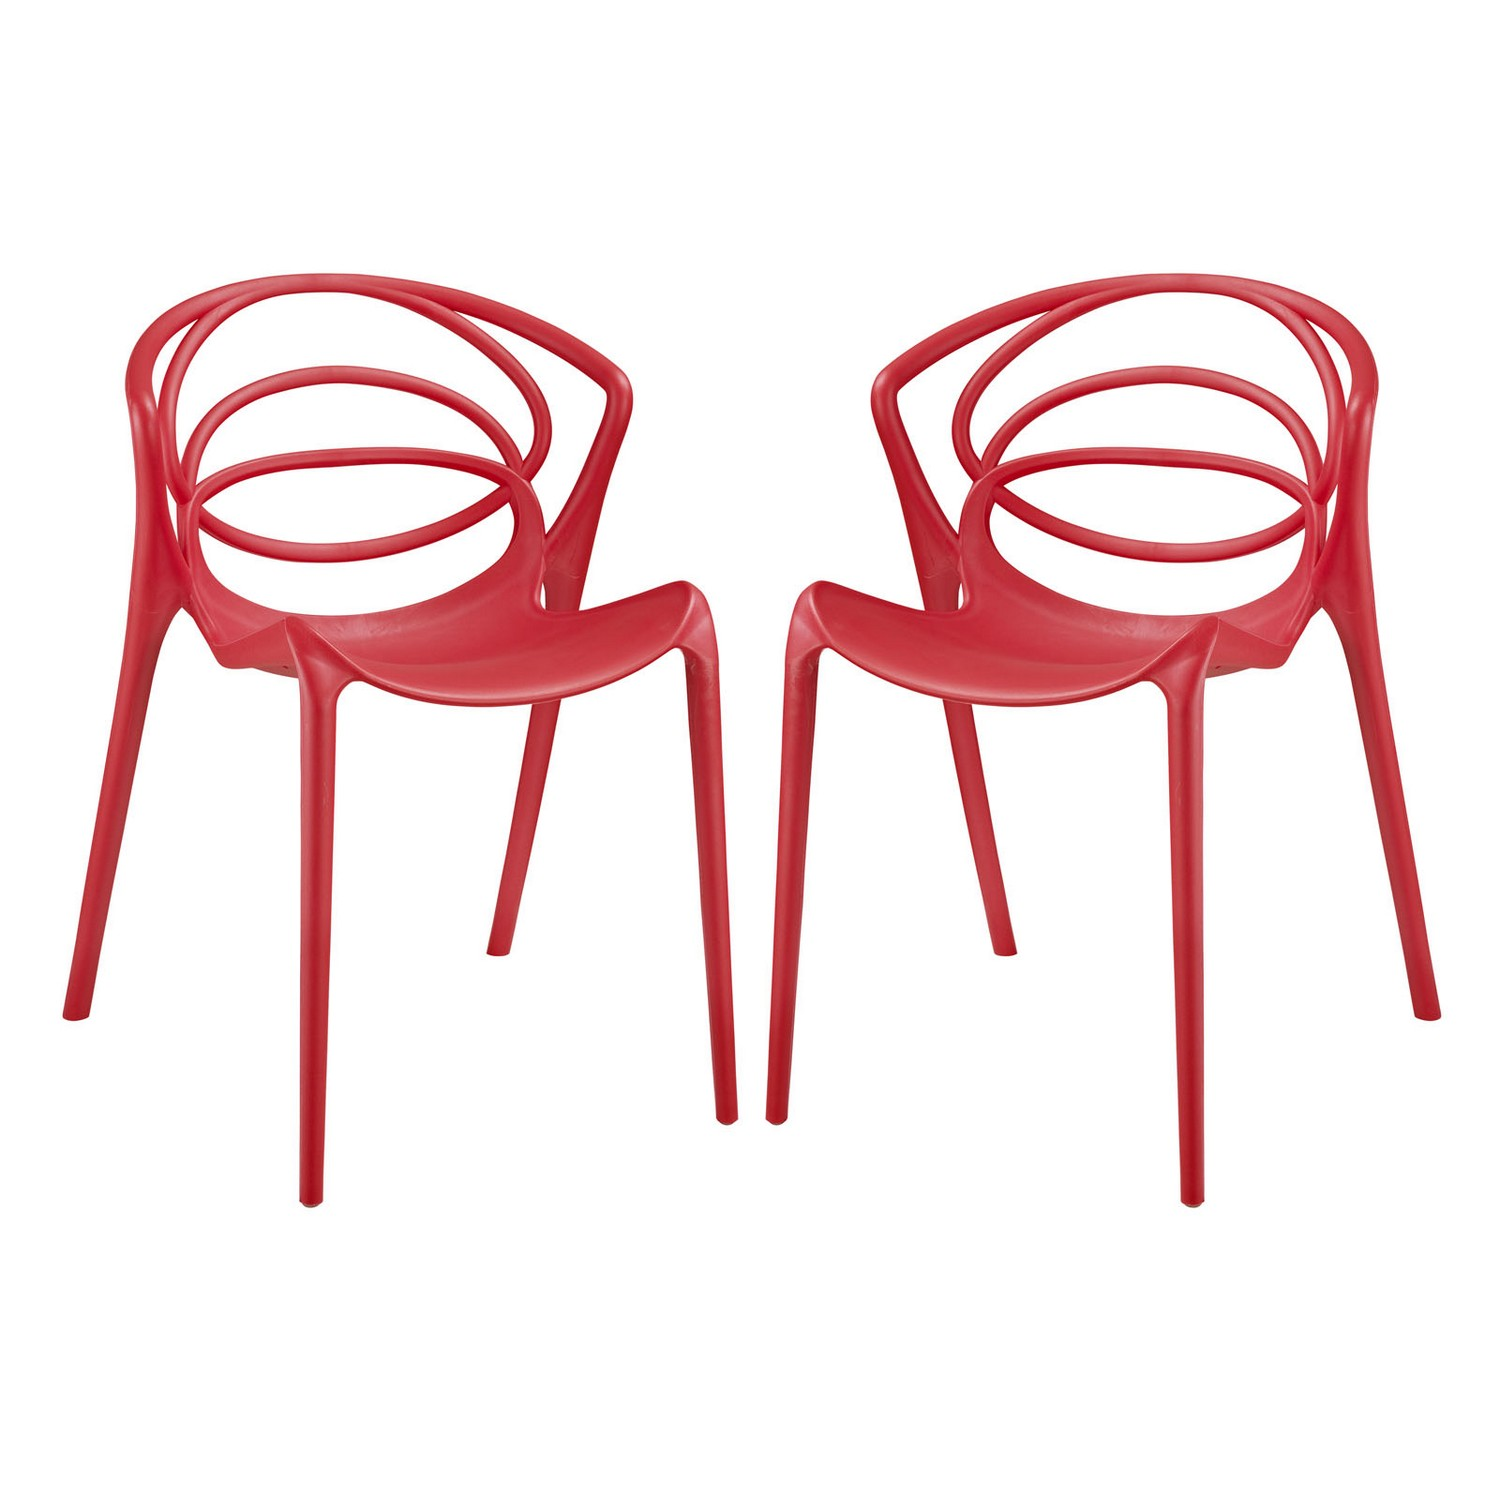 Modway Locus Dining Chair - Set of 2 - Red